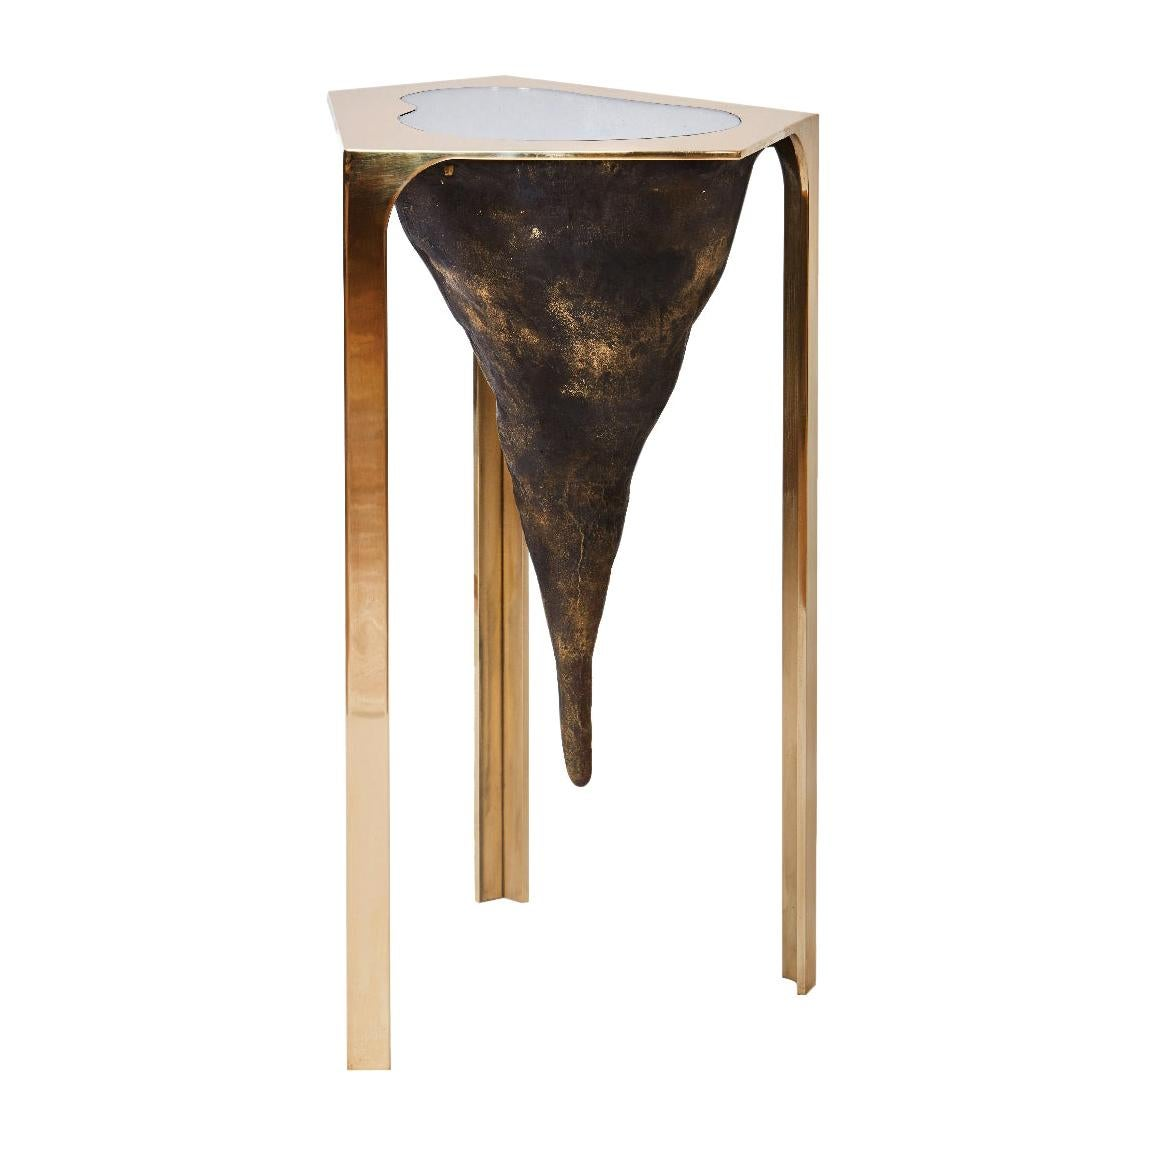 Unearth Table in Bronze, Glass, and Brass by Cam Crockford